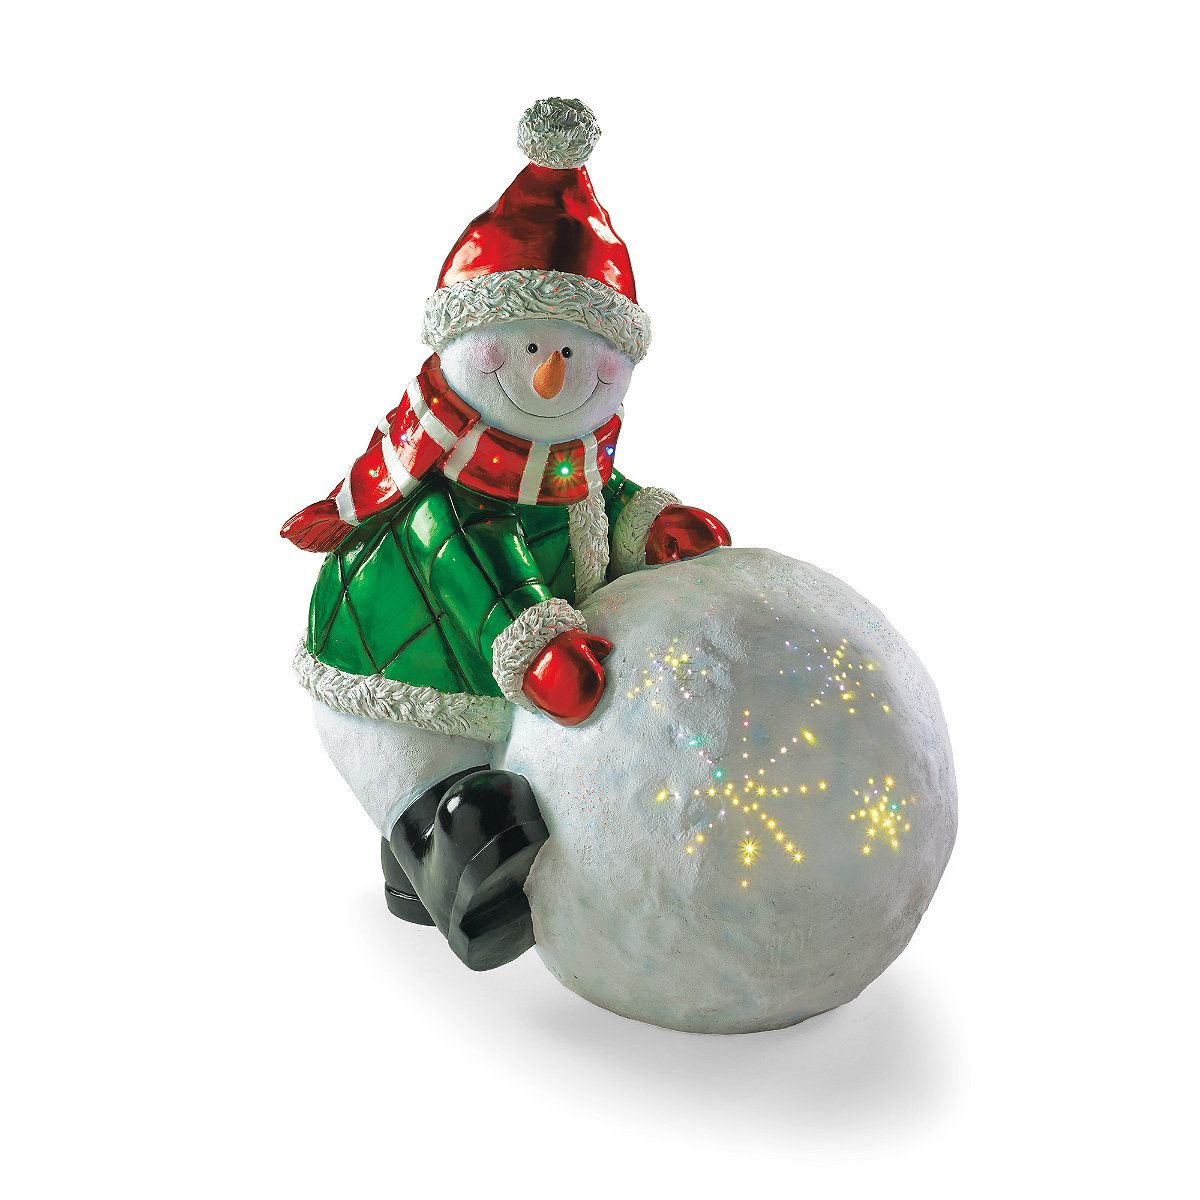 snow day fiber optic snowman - Fiber Optic Snowman Christmas Decorations